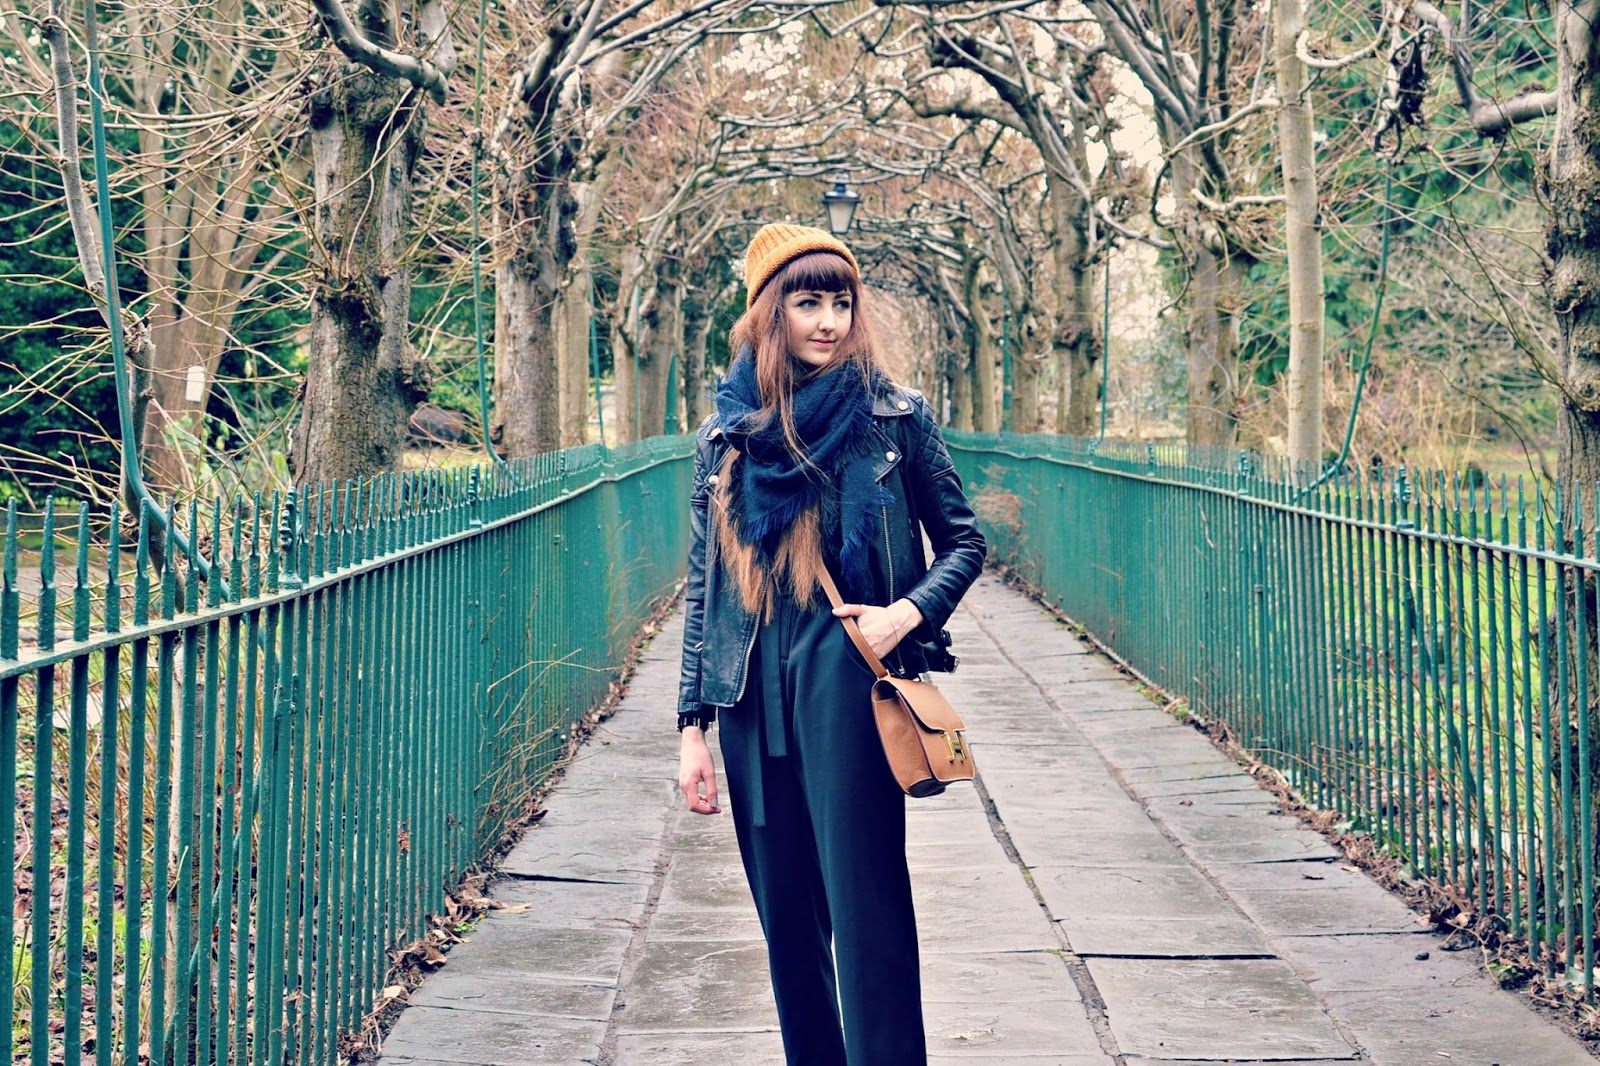 topshop boutique jumpsuit, finery boots, monki hat, hermes bag